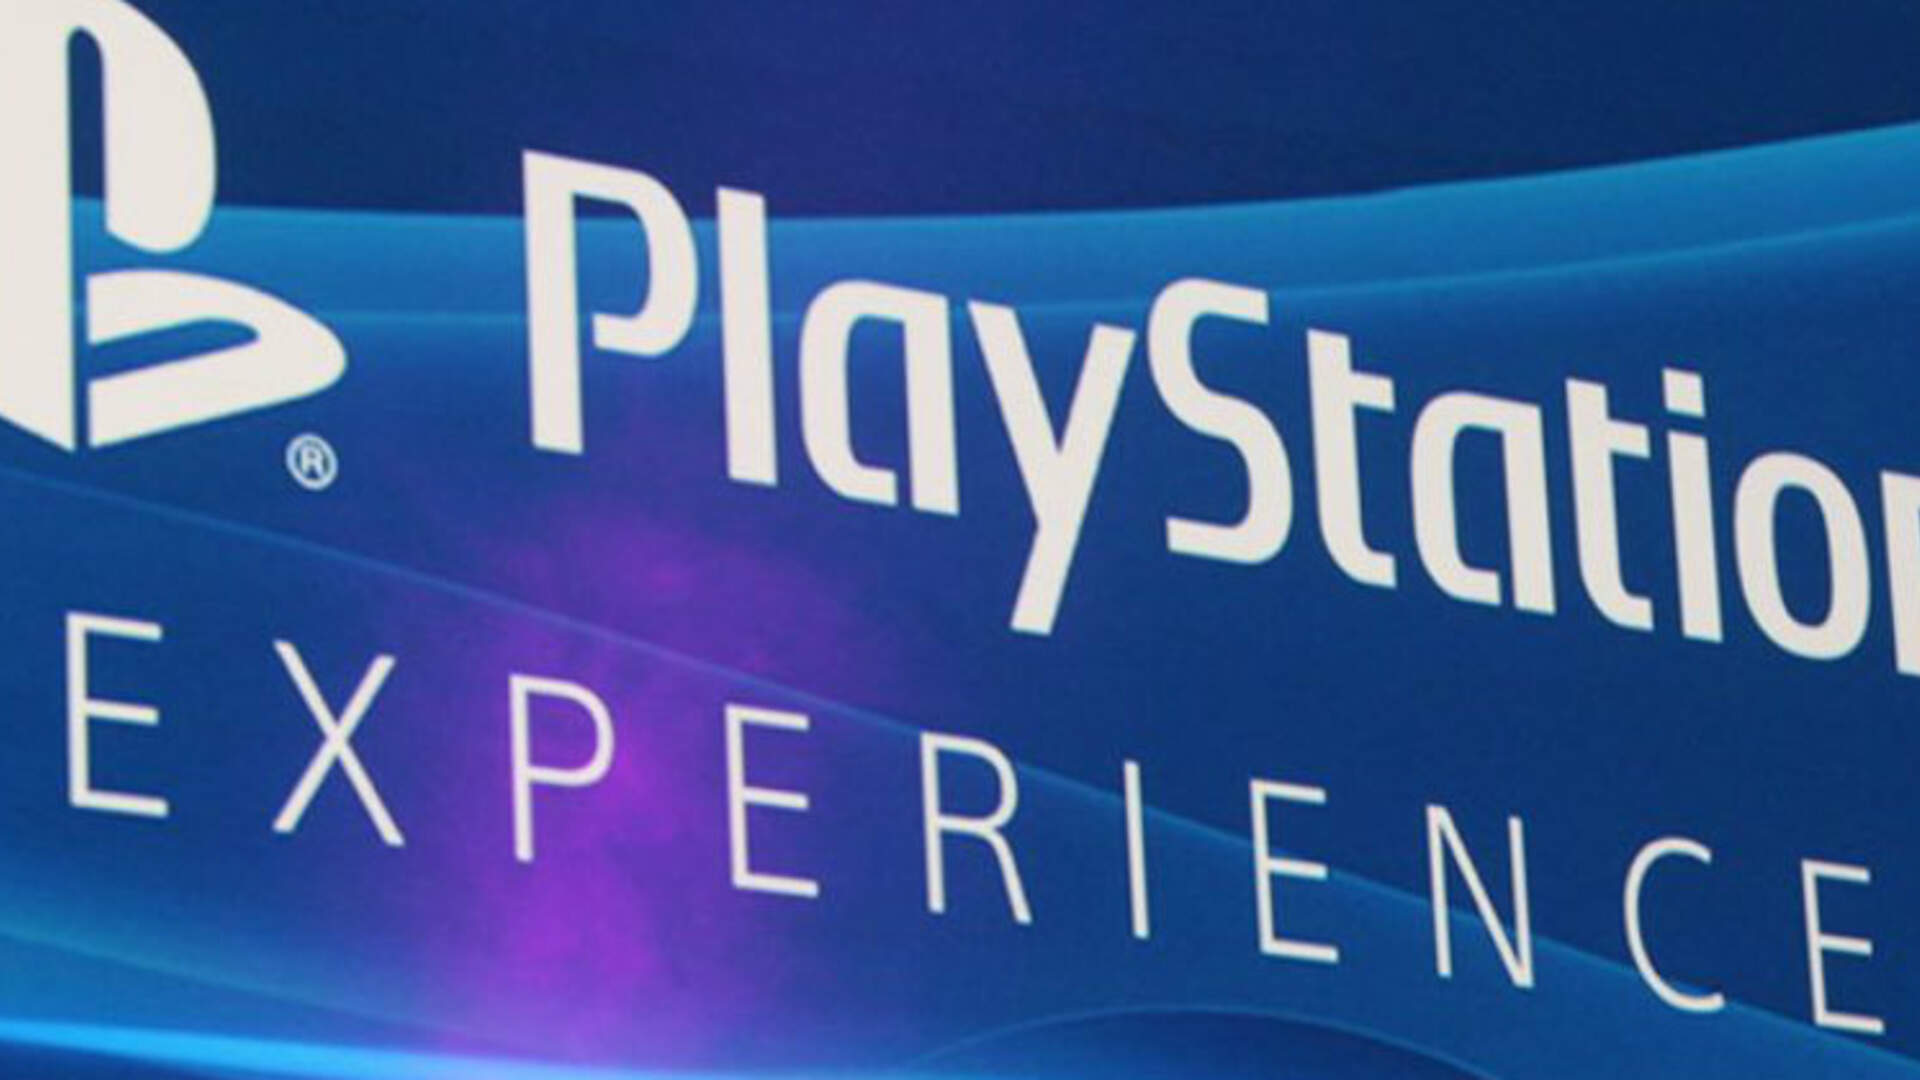 PlayStation Experience 2016 Returns This December